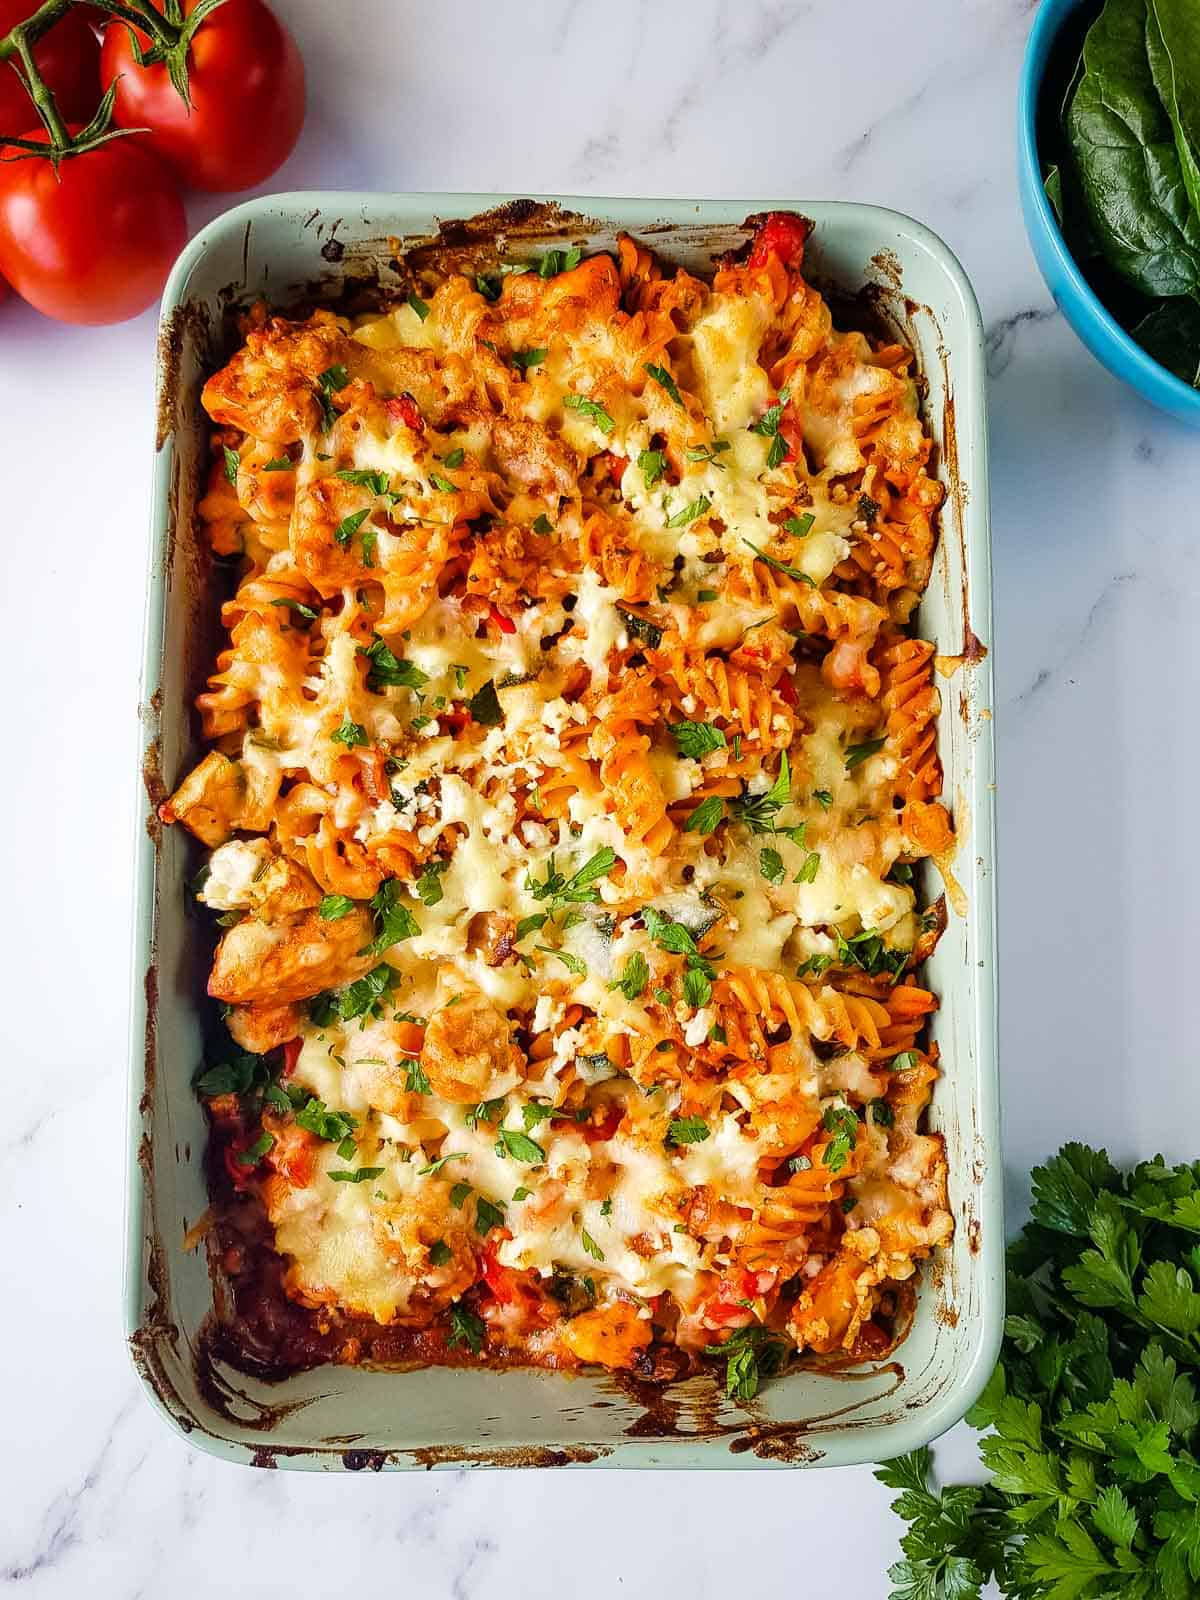 Chicken and Bacon Pasta Bake in a baking dish.